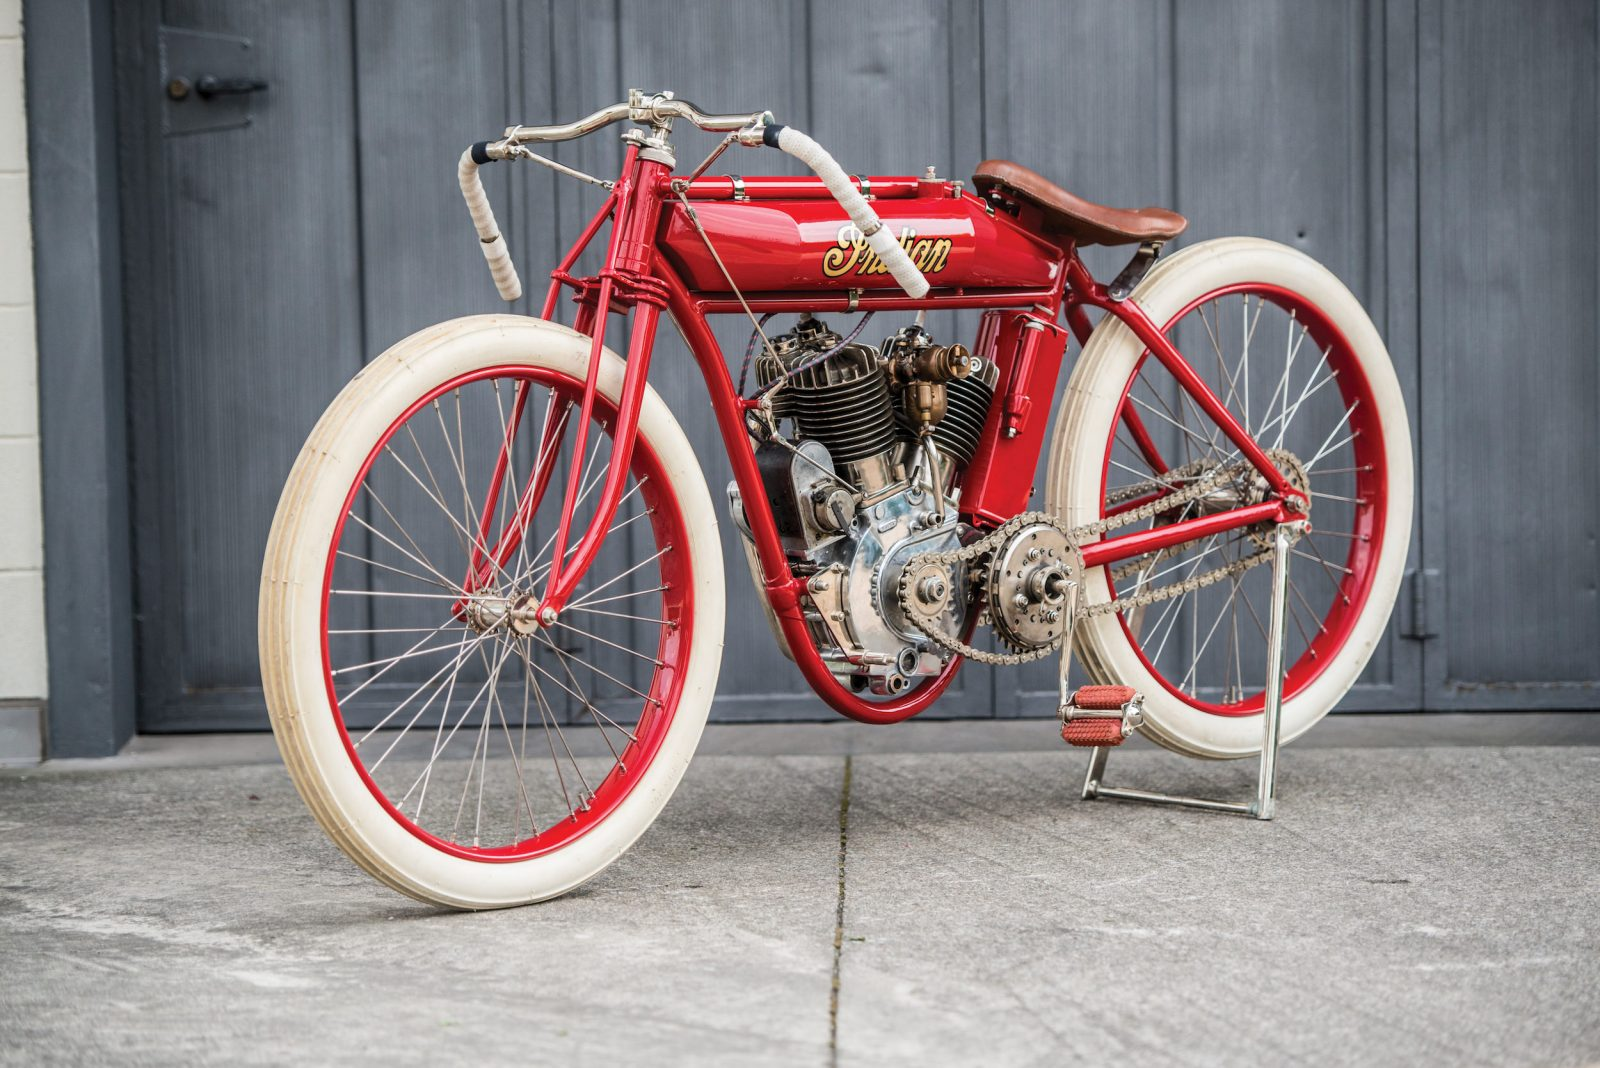 Indian Board Track Racer 1600x1068 - 1919 Indian Powerplus Board Track Racer